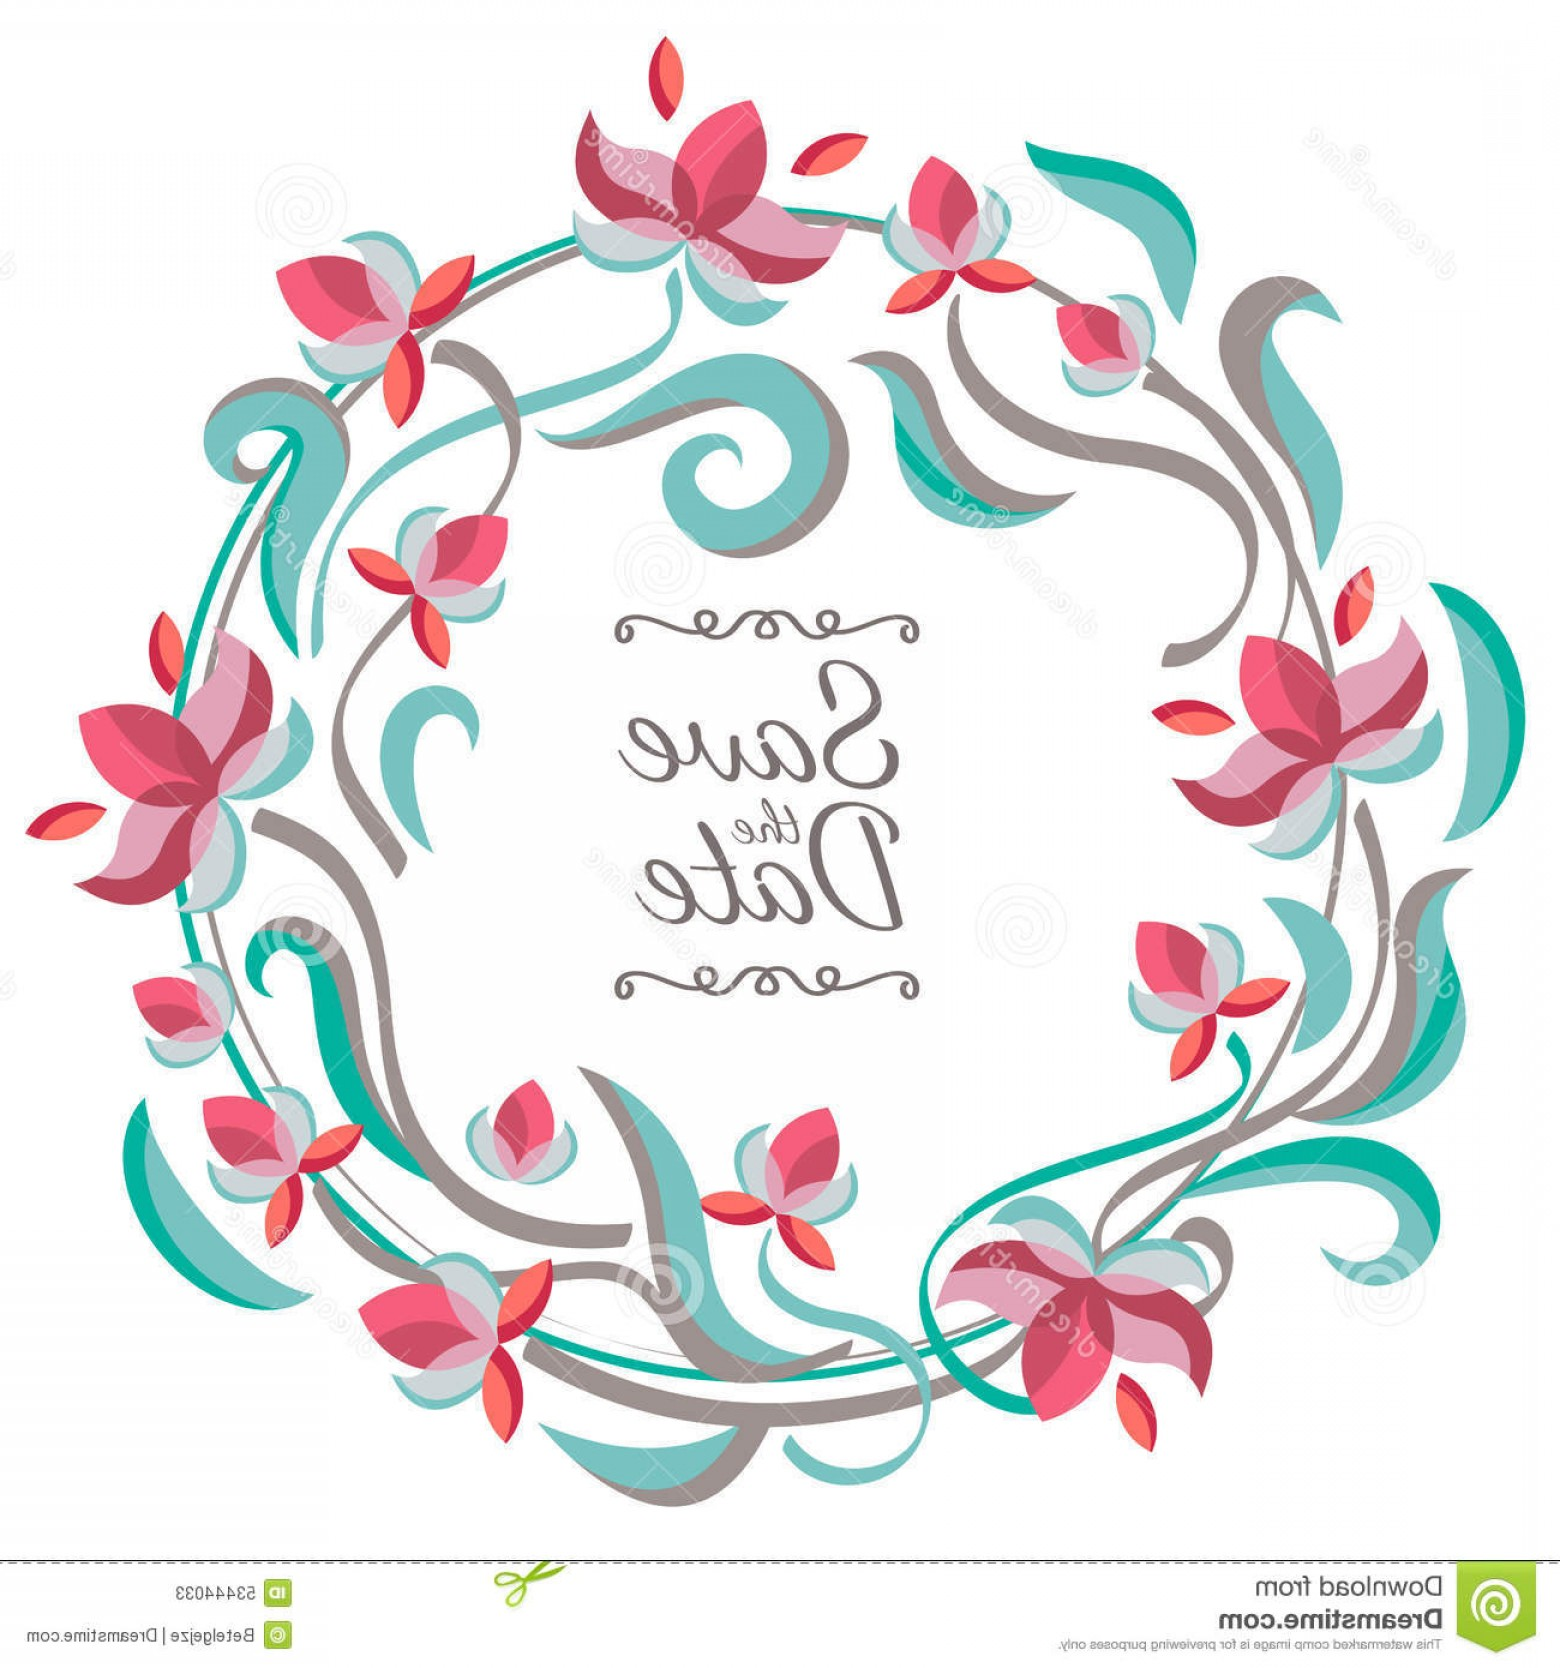 Birthday Card Vector Frame Designs: Stock Illustration Vector Pastel Color Floral Frame Flowers Wedding Birthday Save Date Greeting Card Nature Background Image